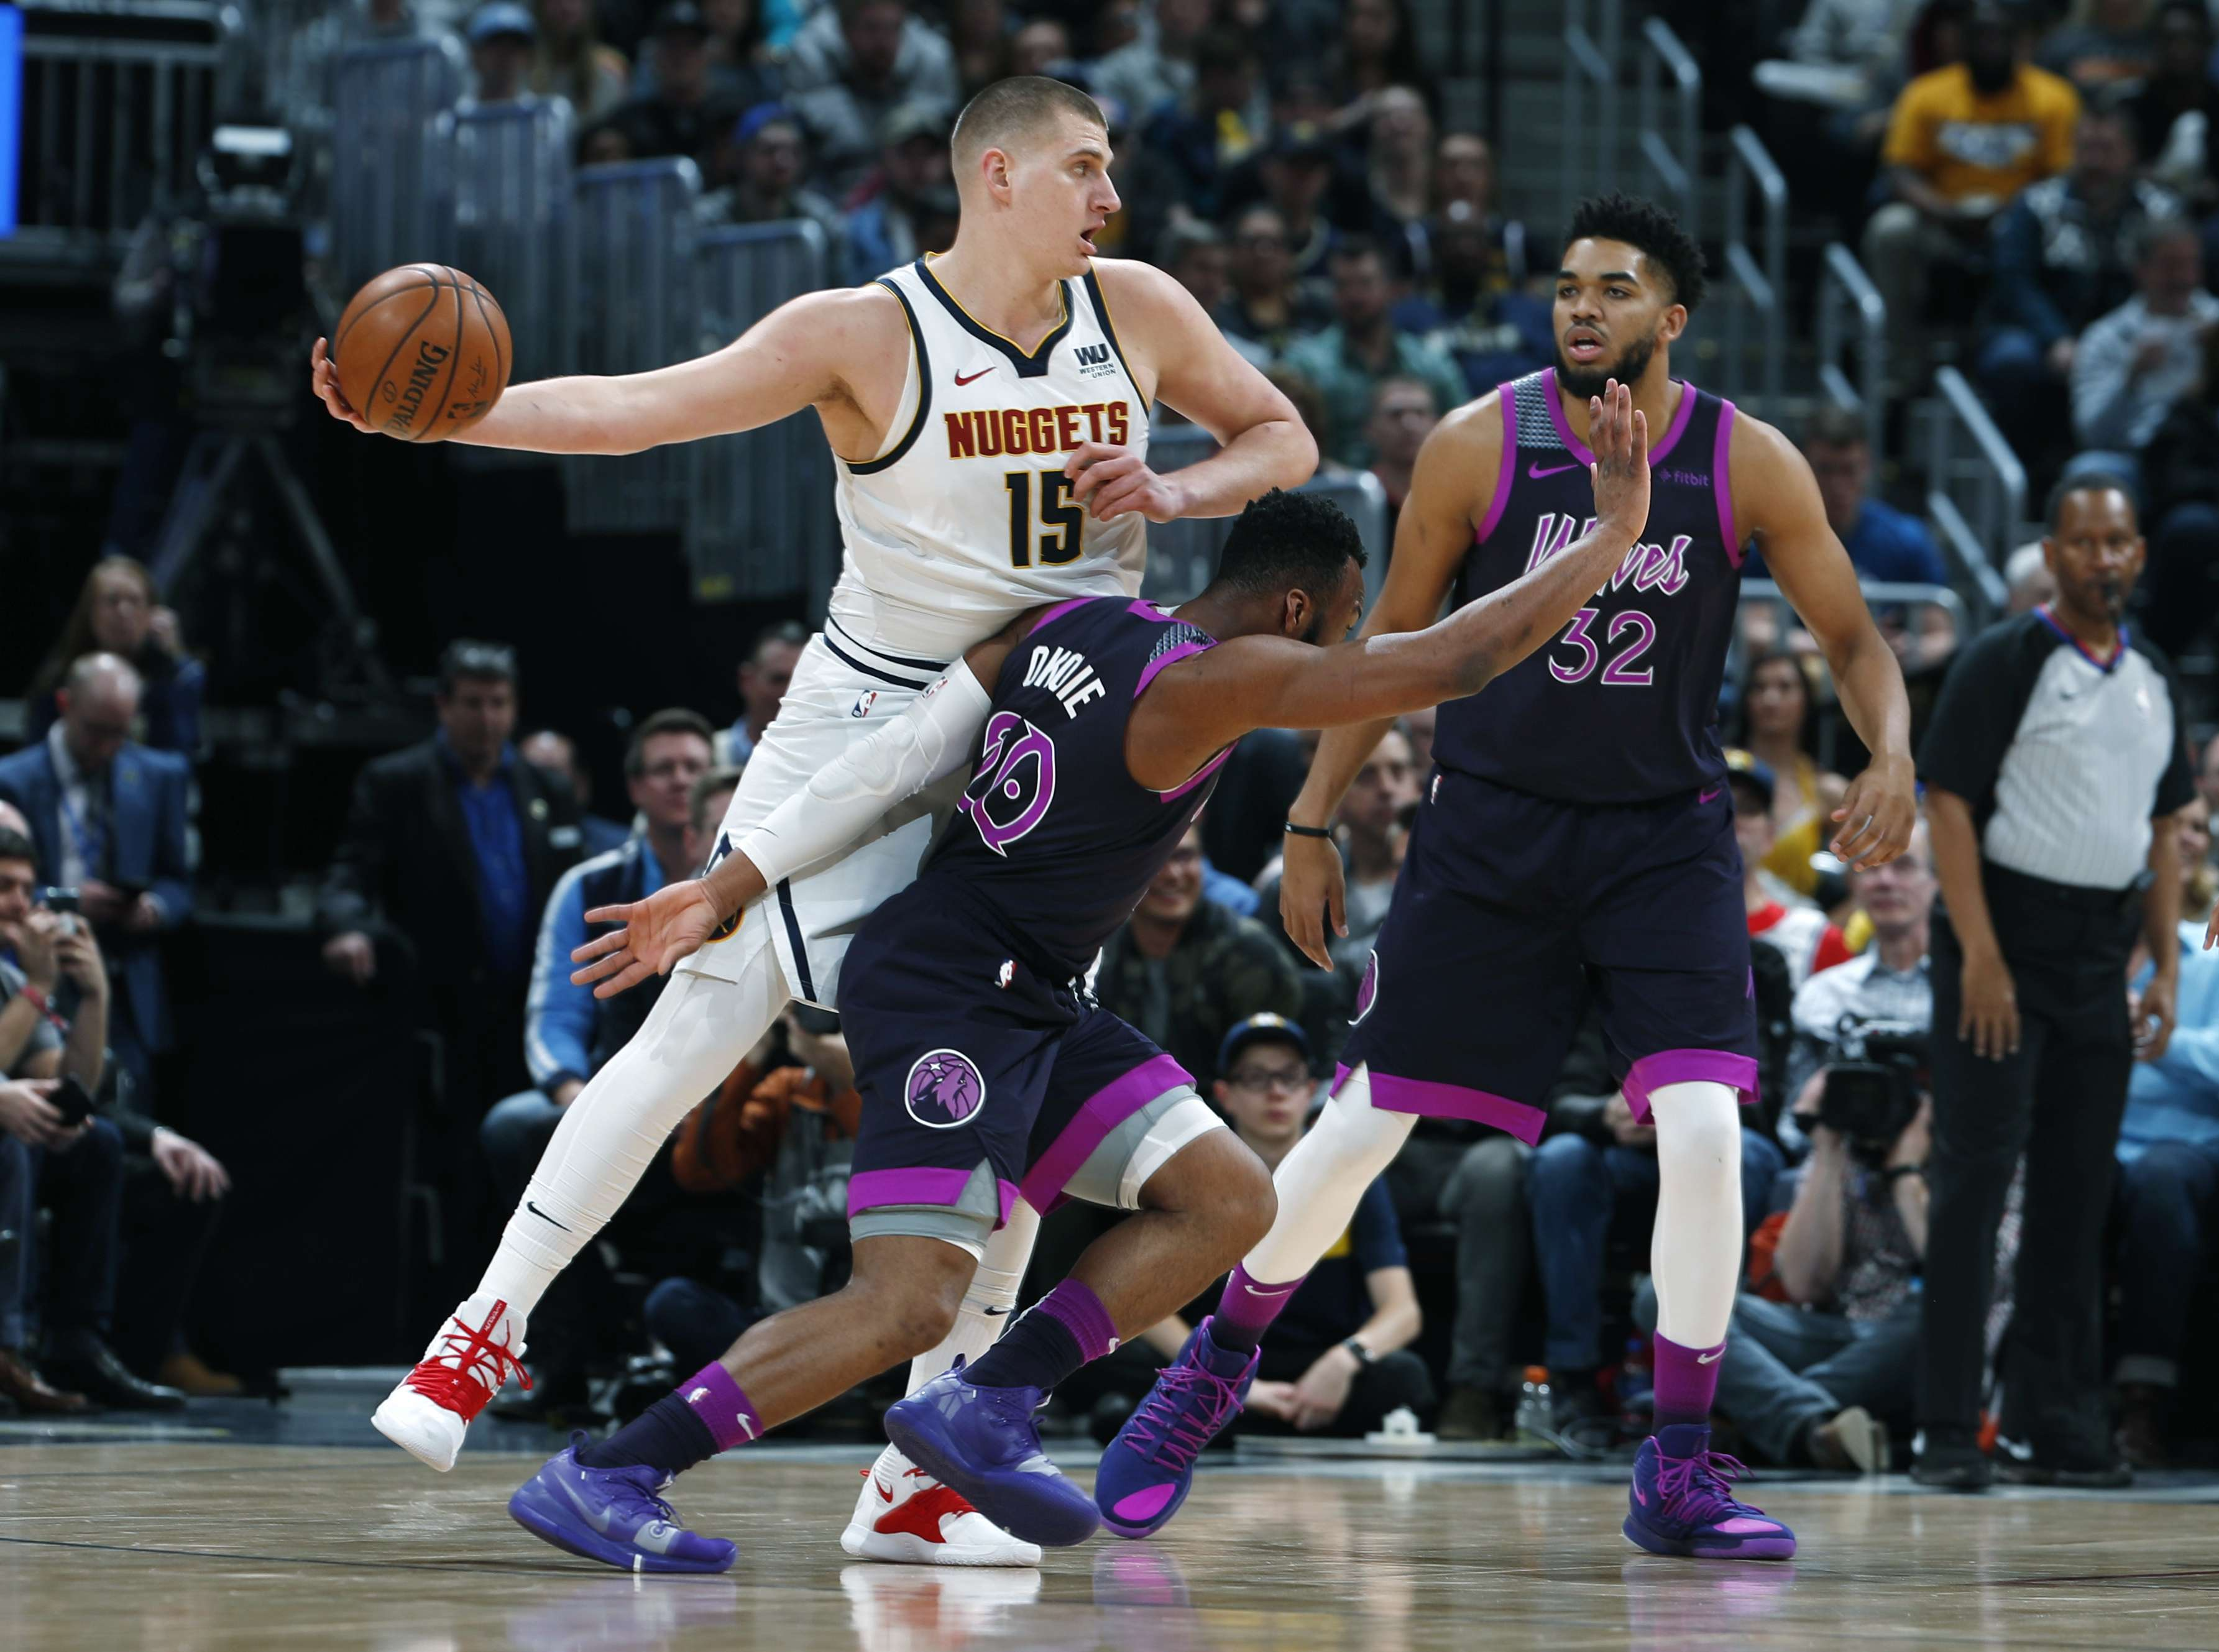 Murray suma 30, y Nuggets vapulean a Wolves